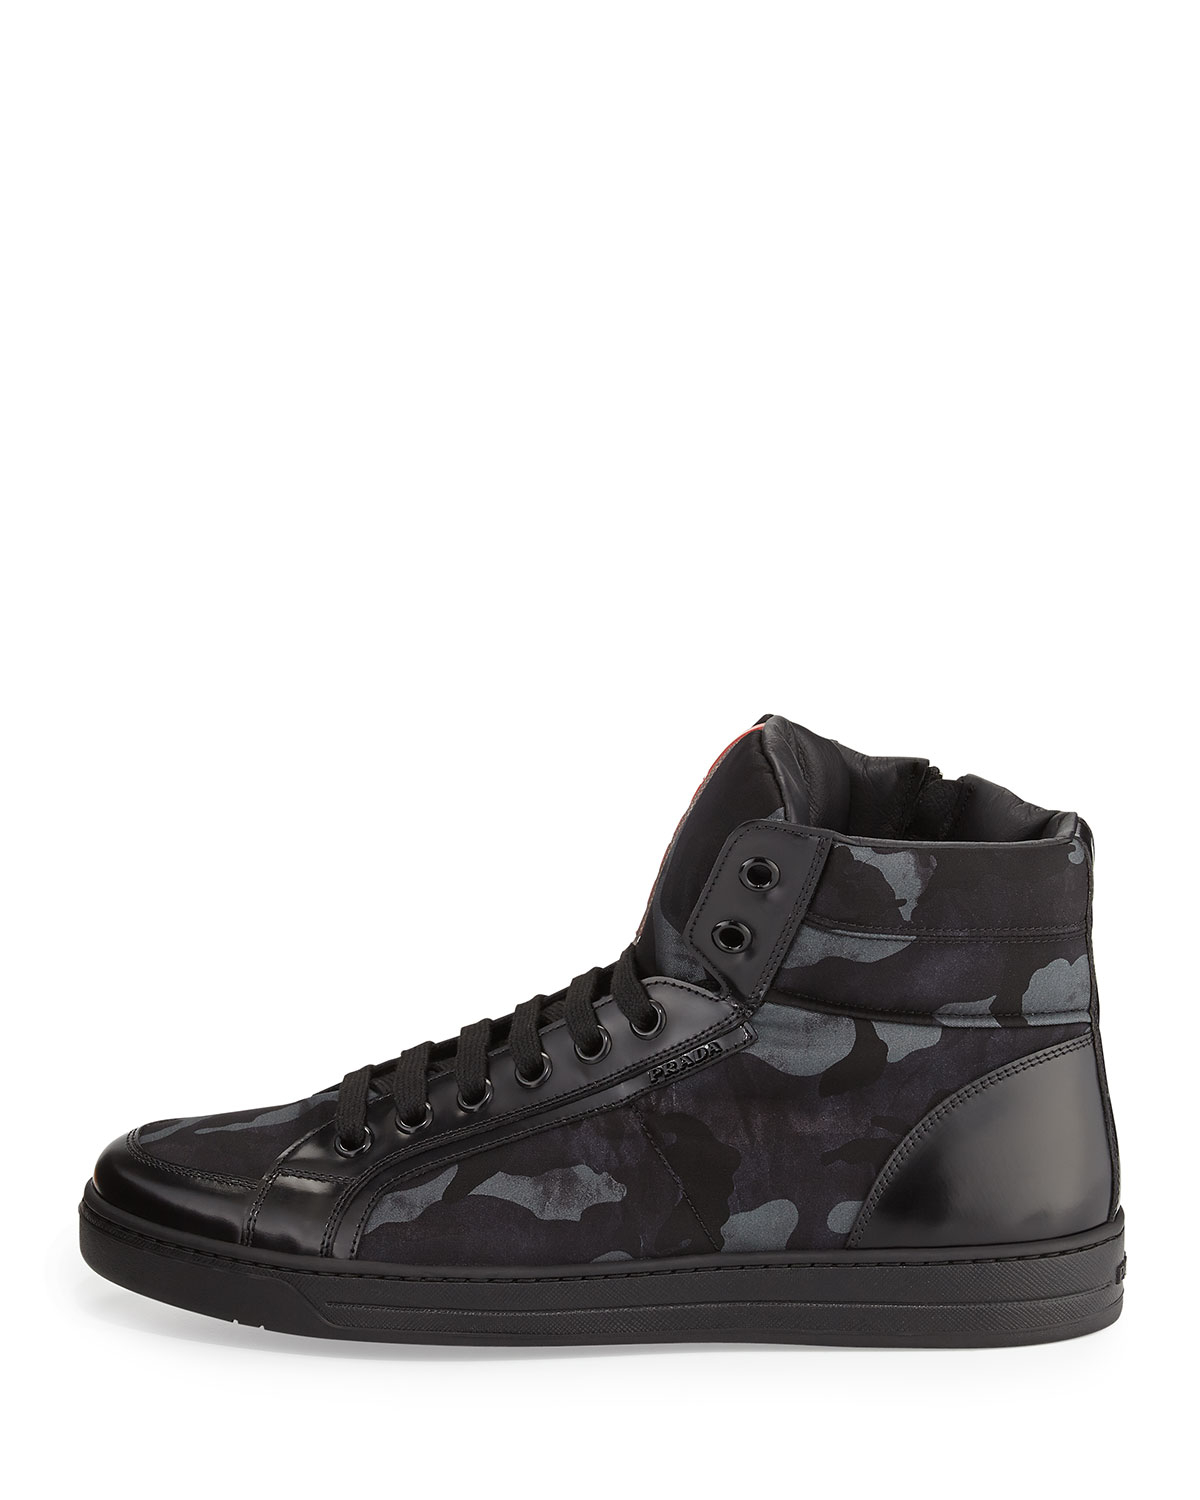 a90aae4aa24f1 Camouflage Black Print In For Men Top Prada Lyst Sneakers High 1Egqx5qw0